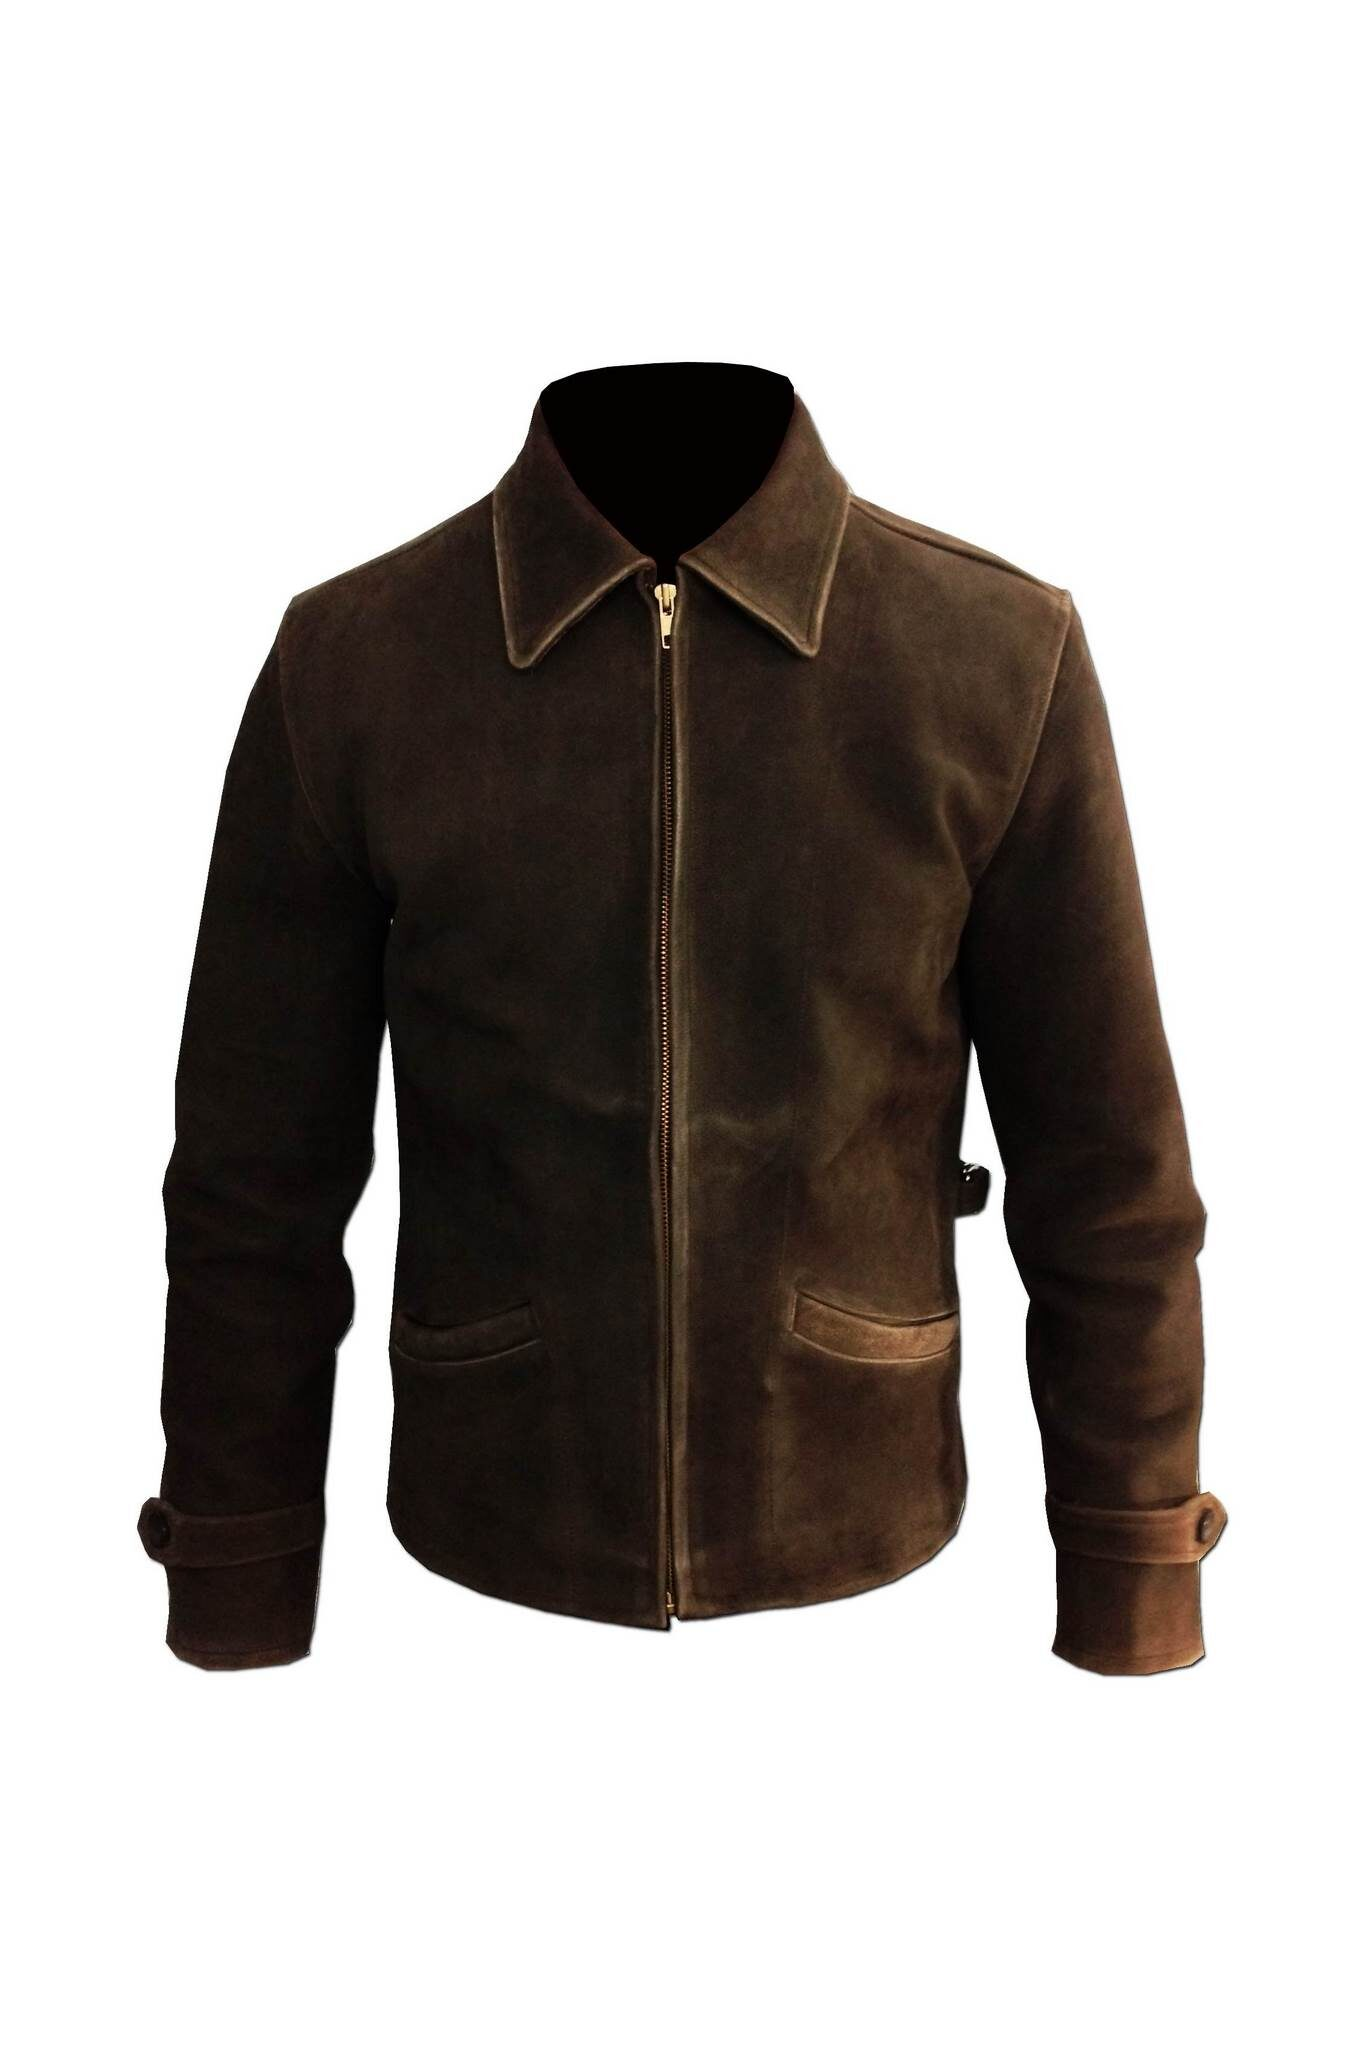 Rub Off Mens Vintage Leather Jacket